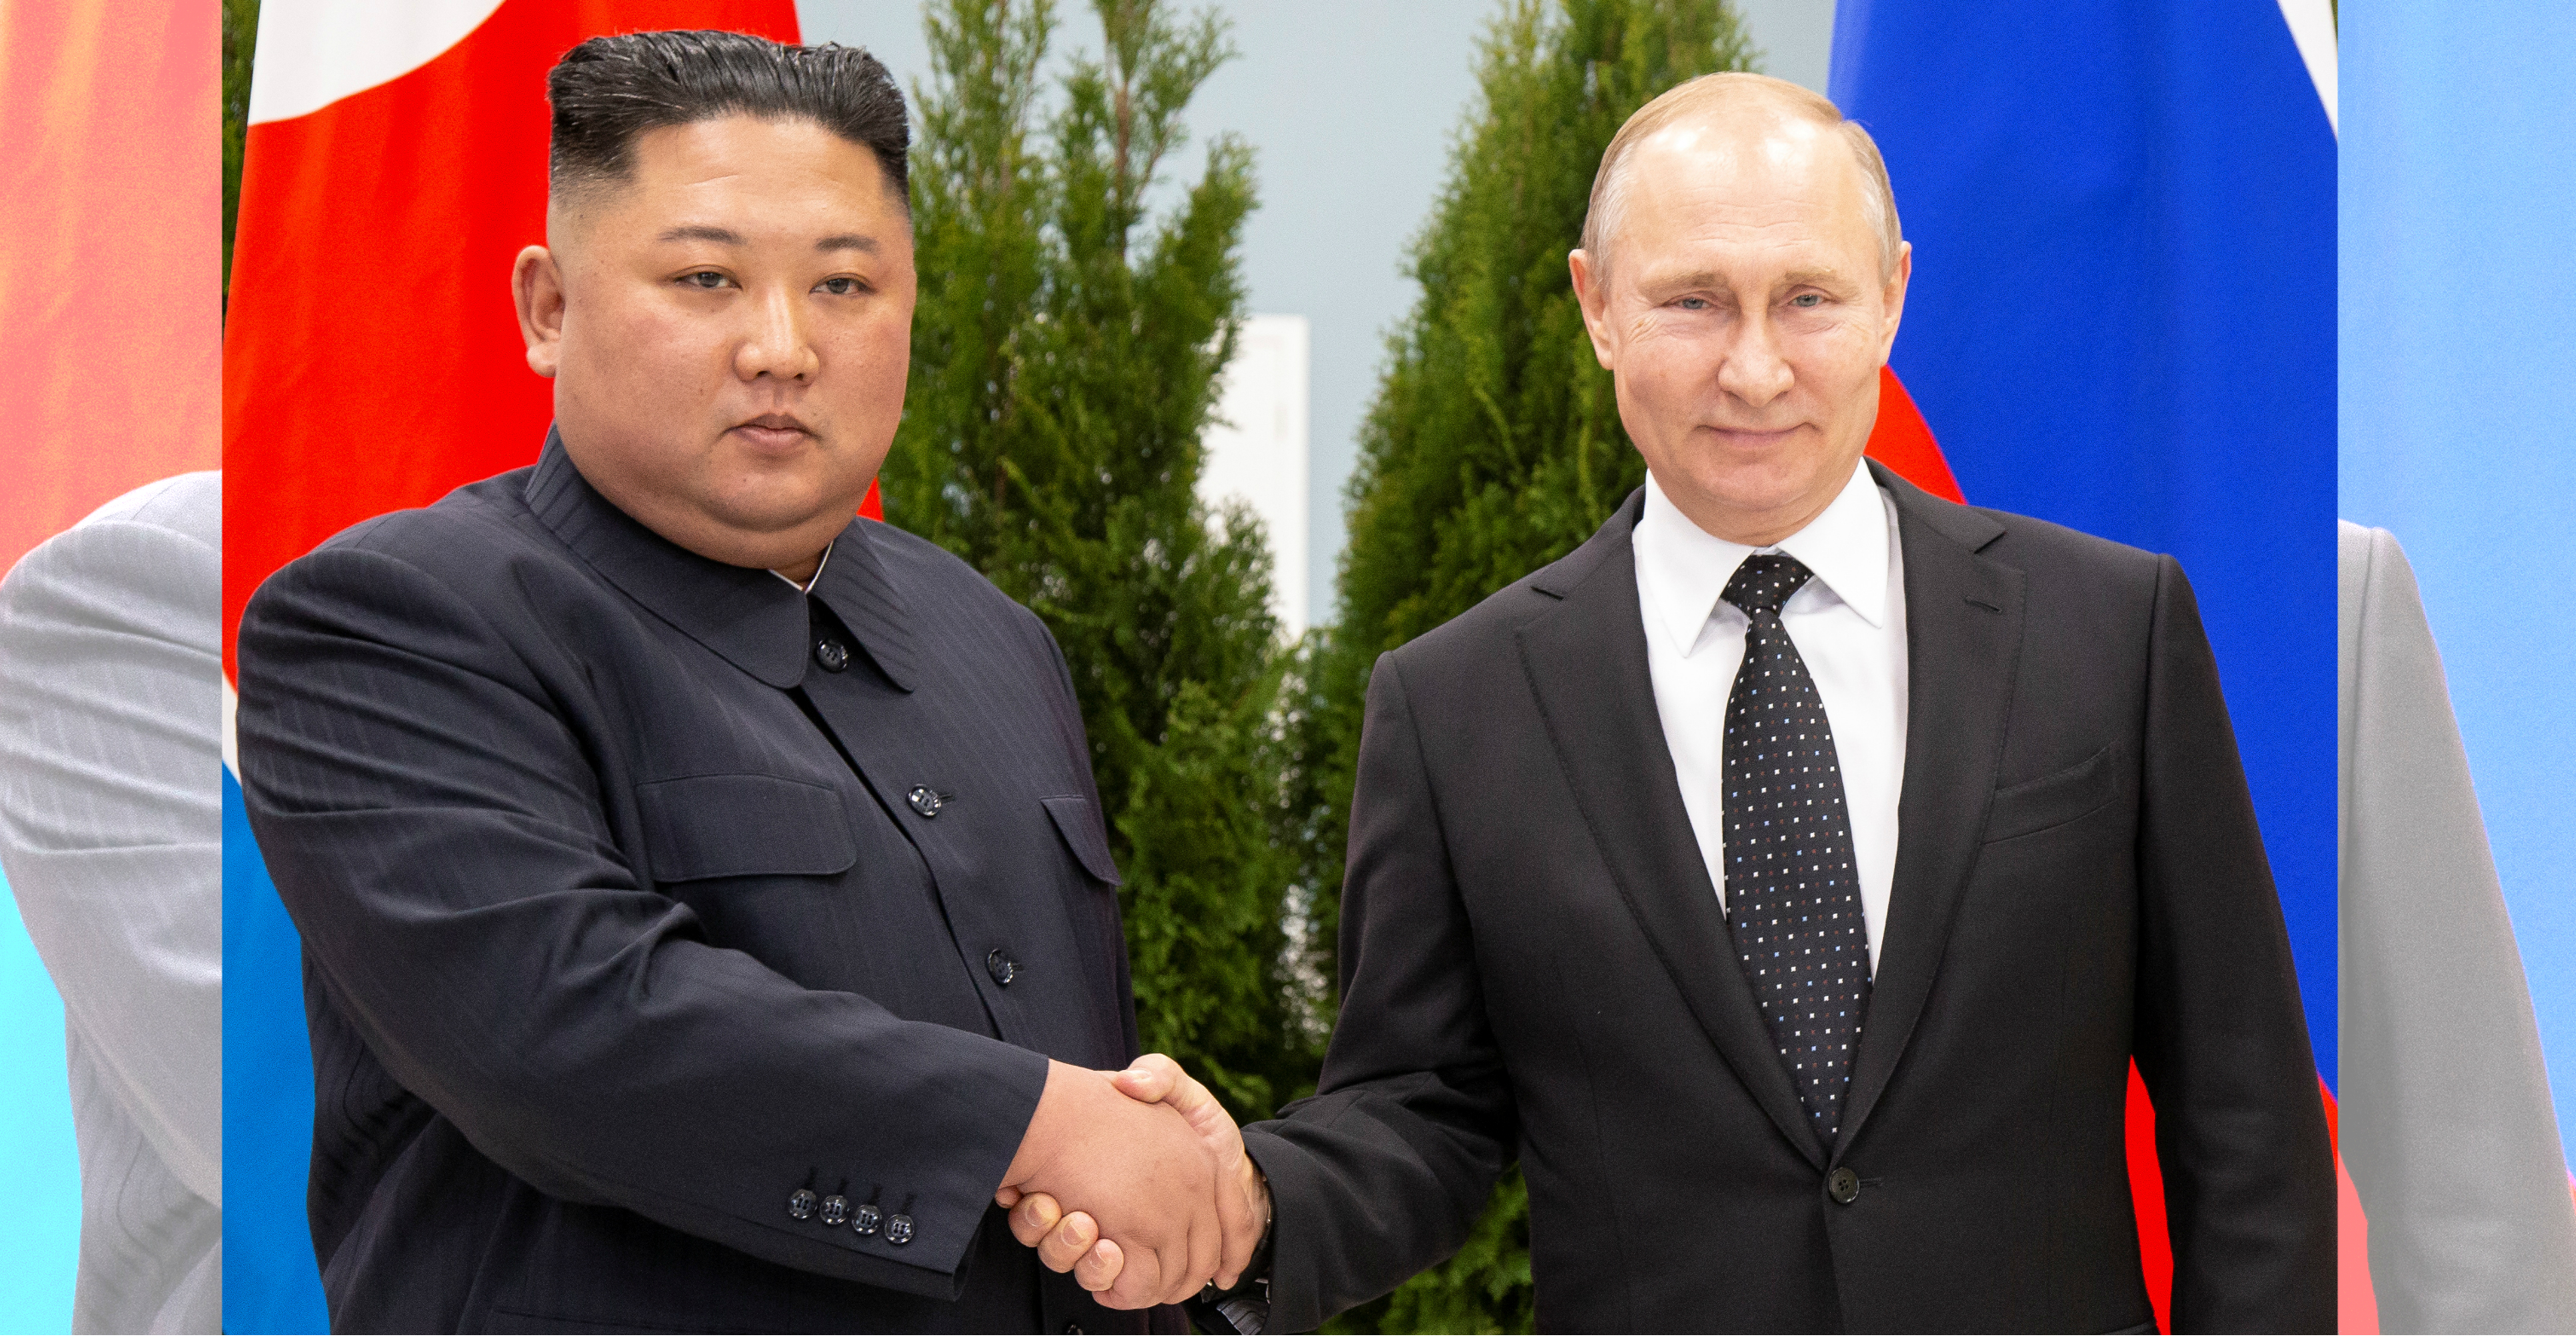 Russian President Vladimir Putin and North Korean leader Kim Jong-un shake hands prior to their talks in Vladivostok on Thursday. Photo: Reuters